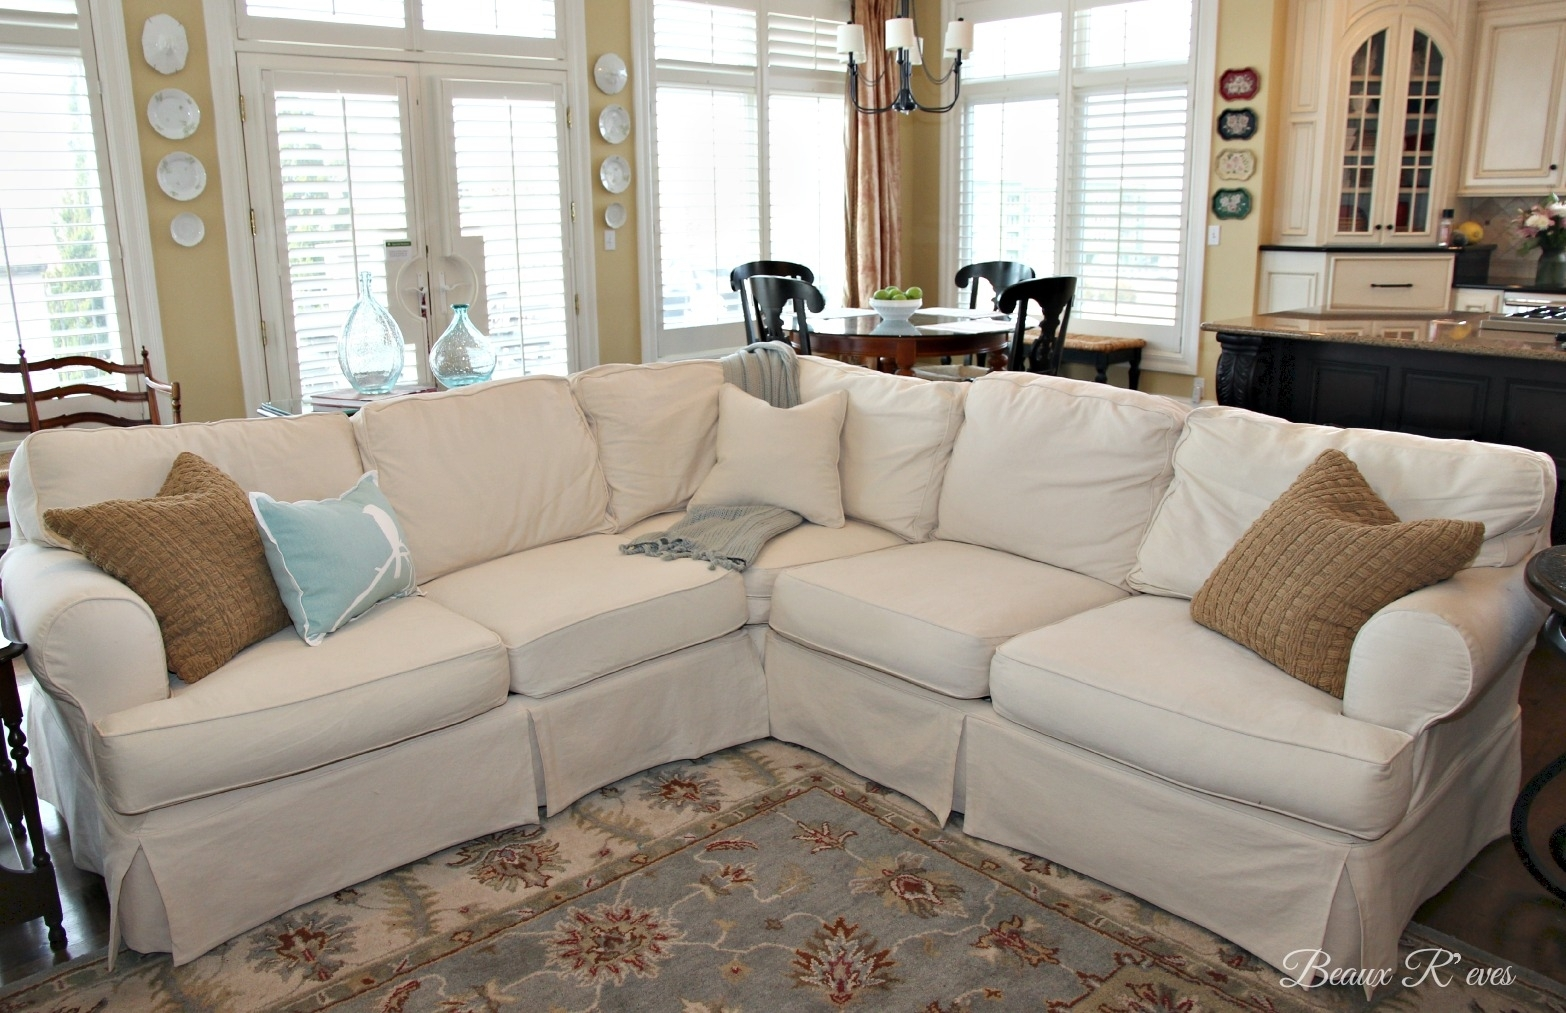 jcpenny sofas tufted leather for sale 10 top jcpenney sectional sofa ideas